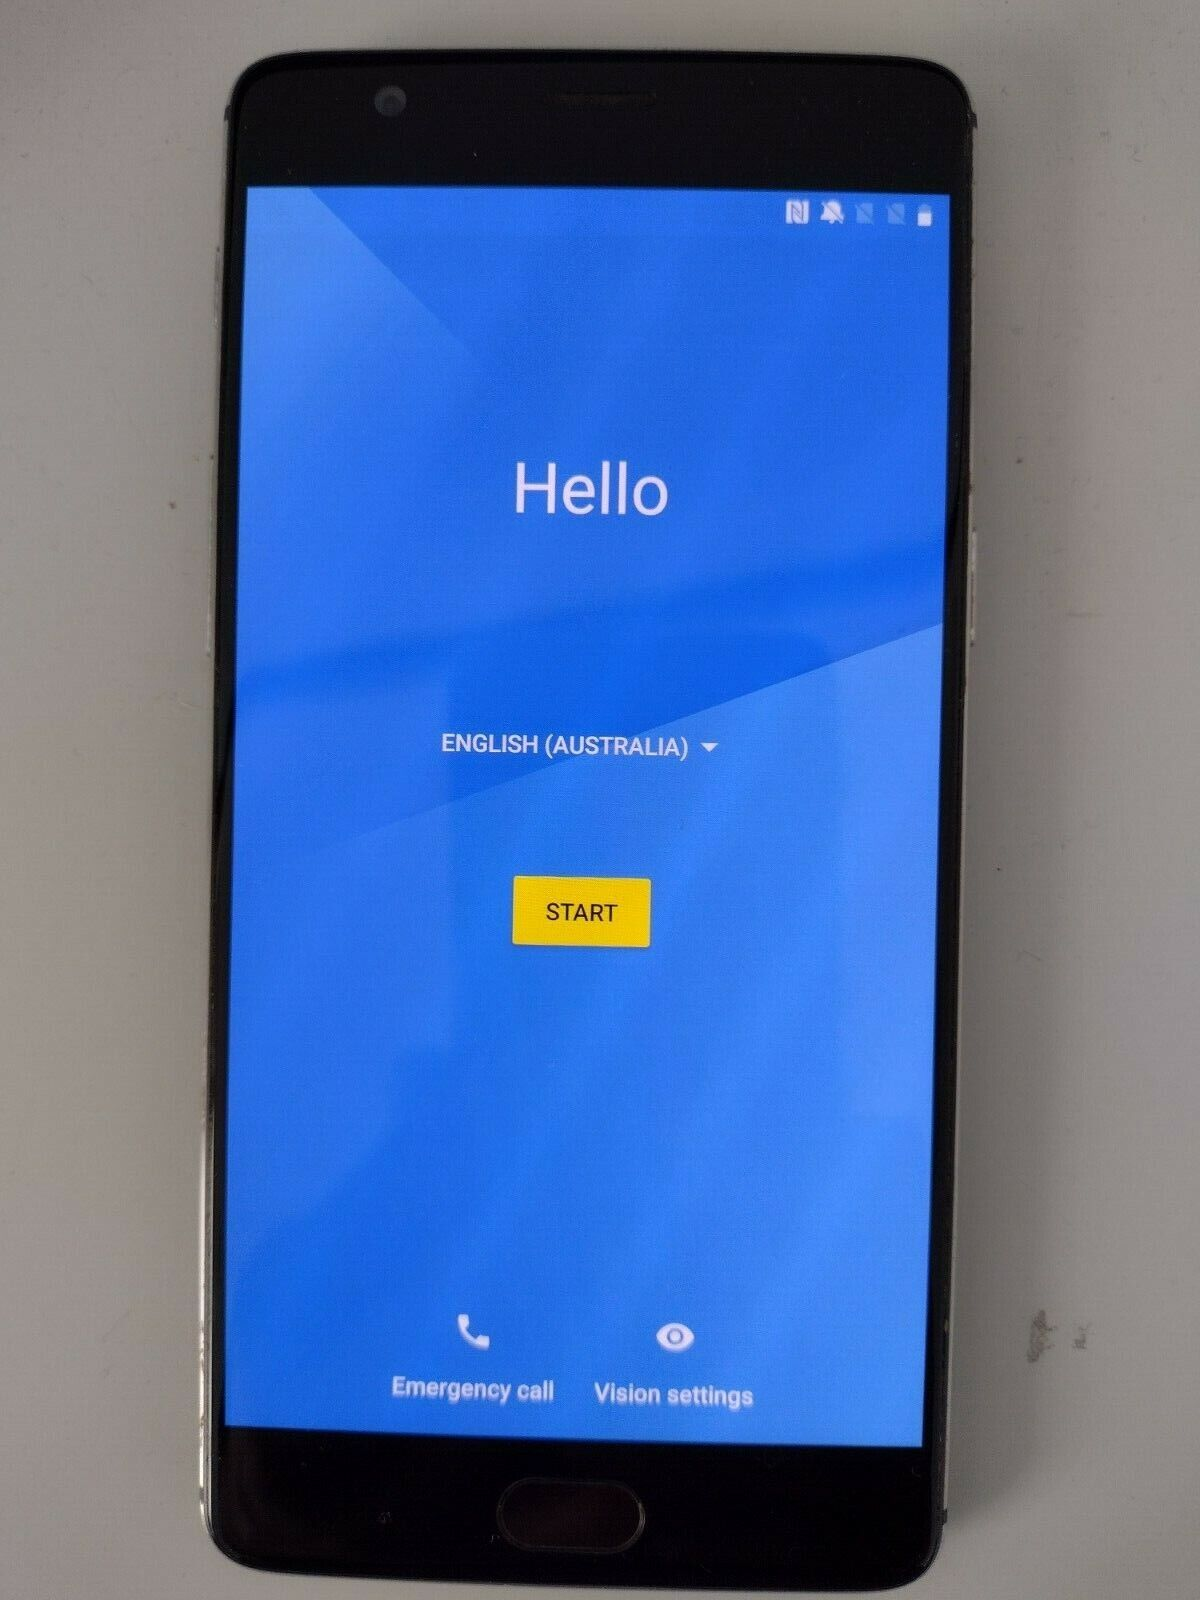 Android Phone - Cheap Good Android Phone OnePlus 3 - 64GB - Graphite Smartphone - Good Condition